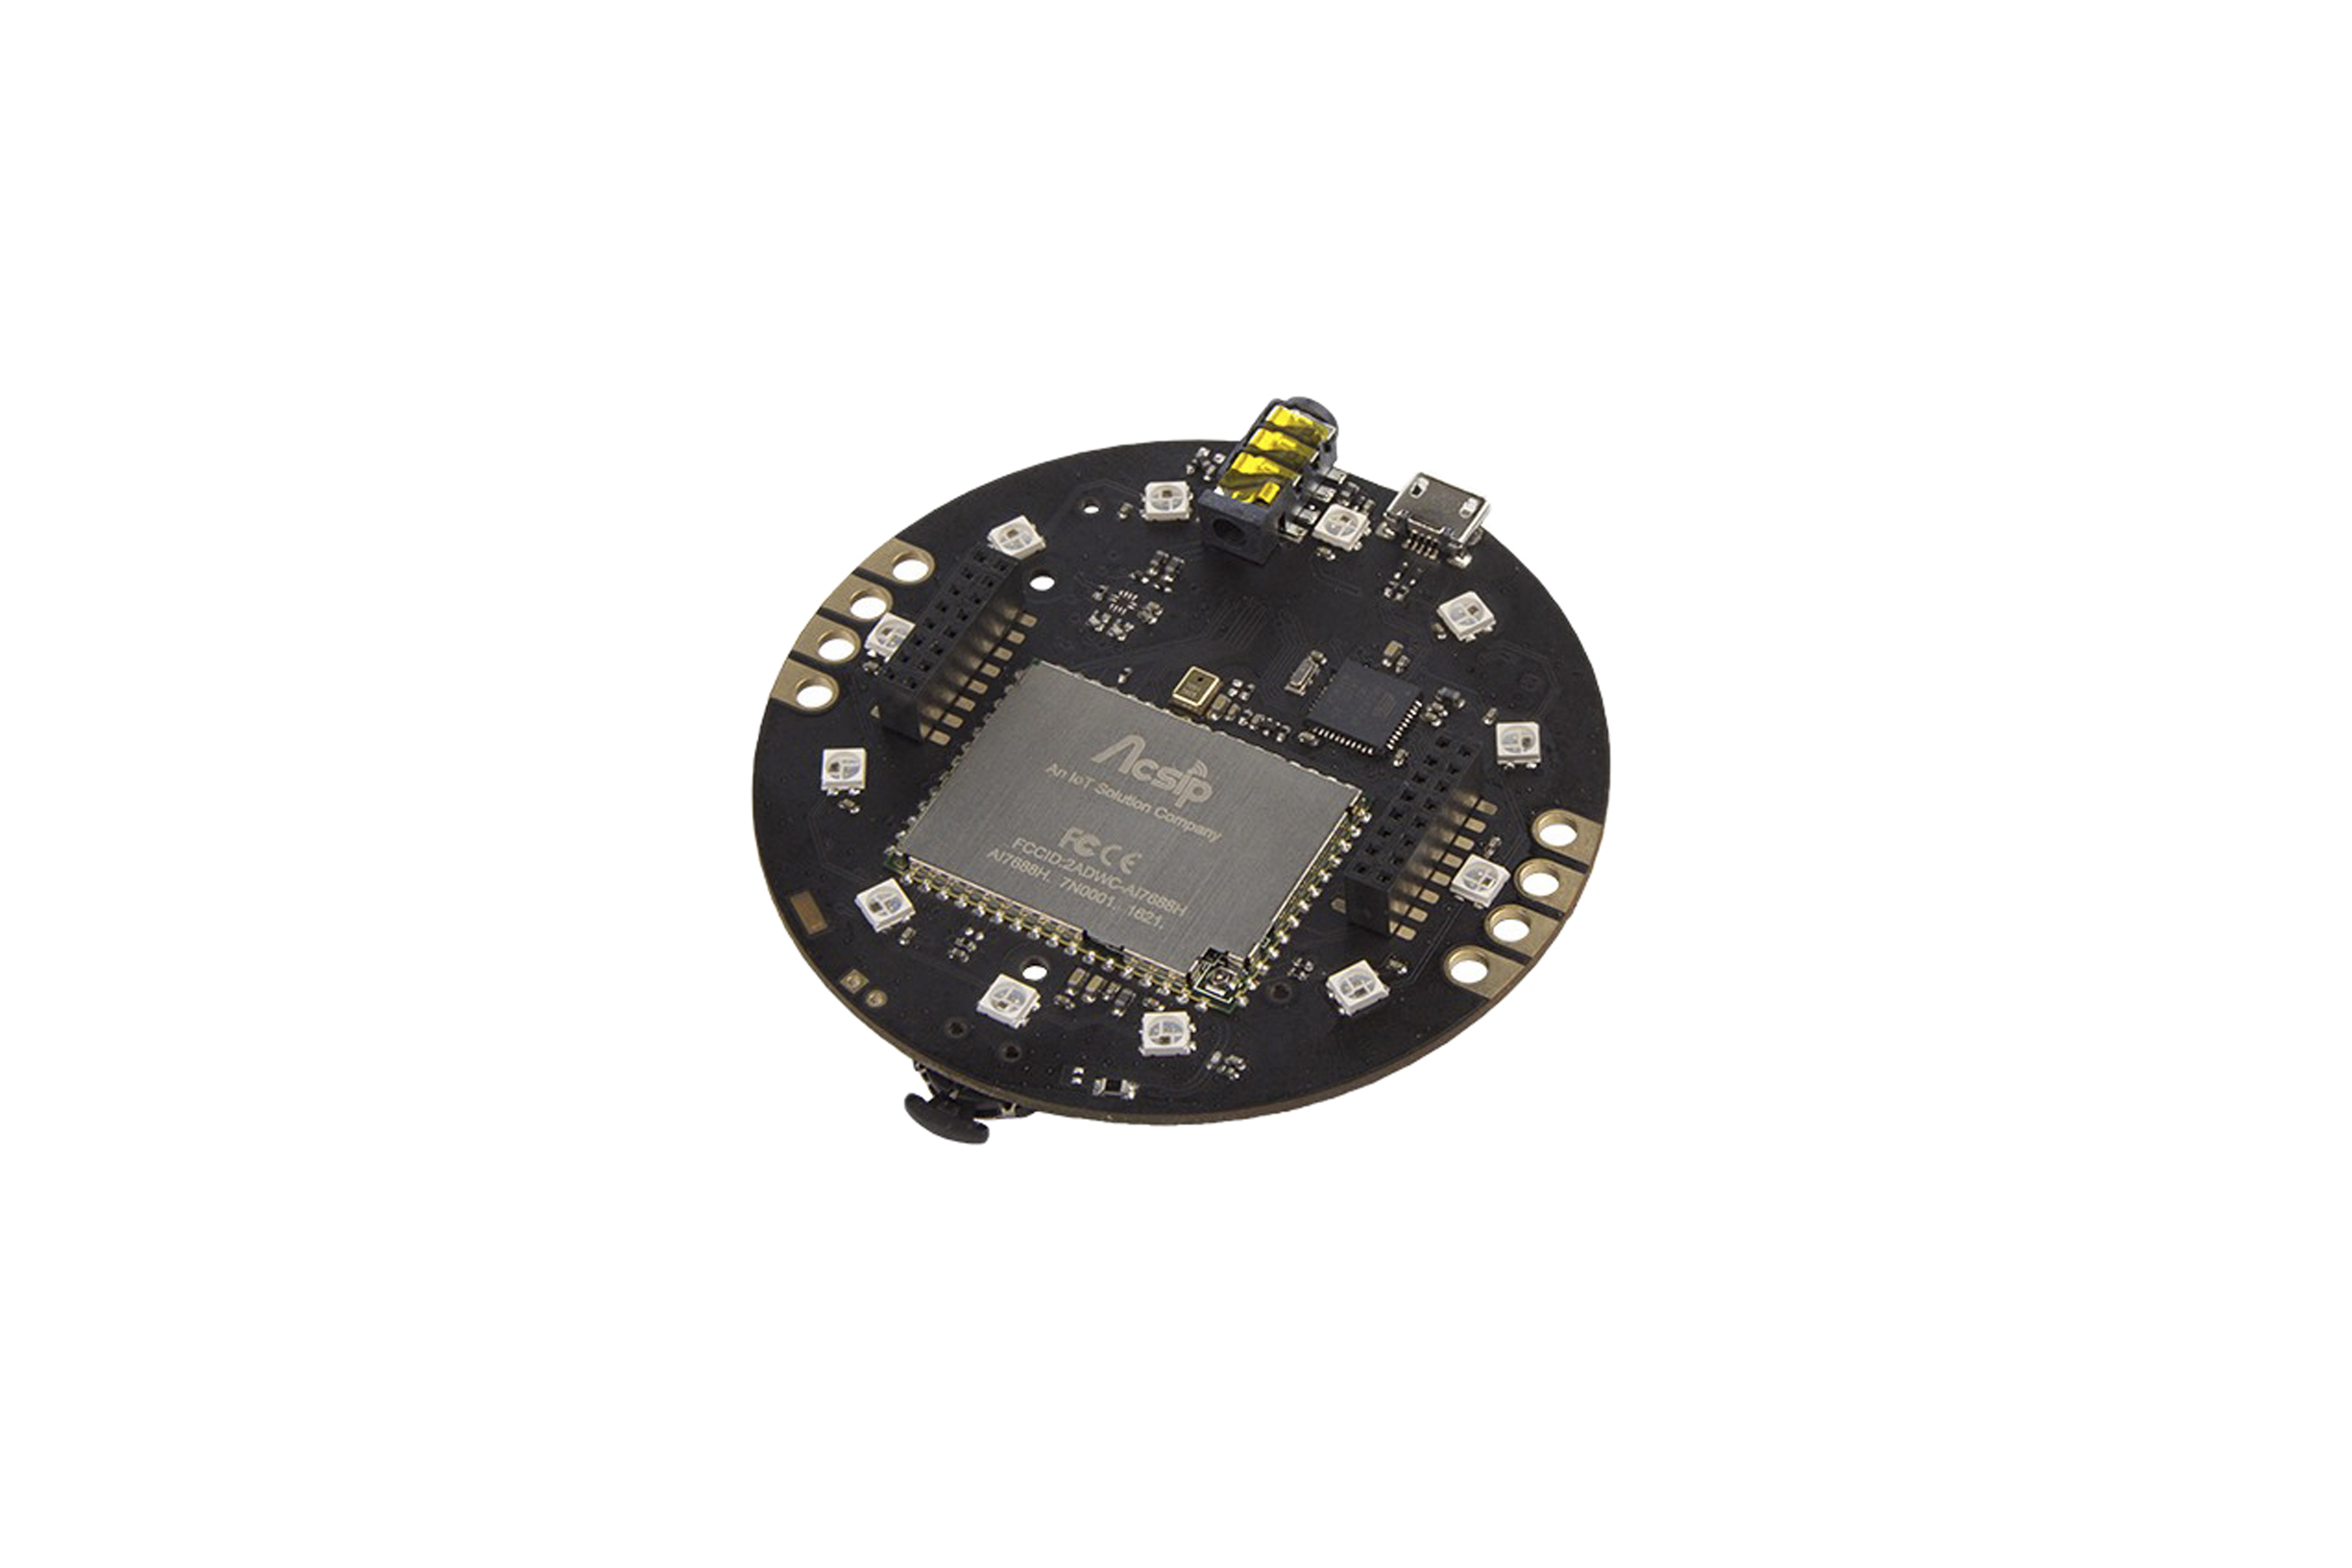 Respeaker Core With Mt7688 And Openwrt - OKdo